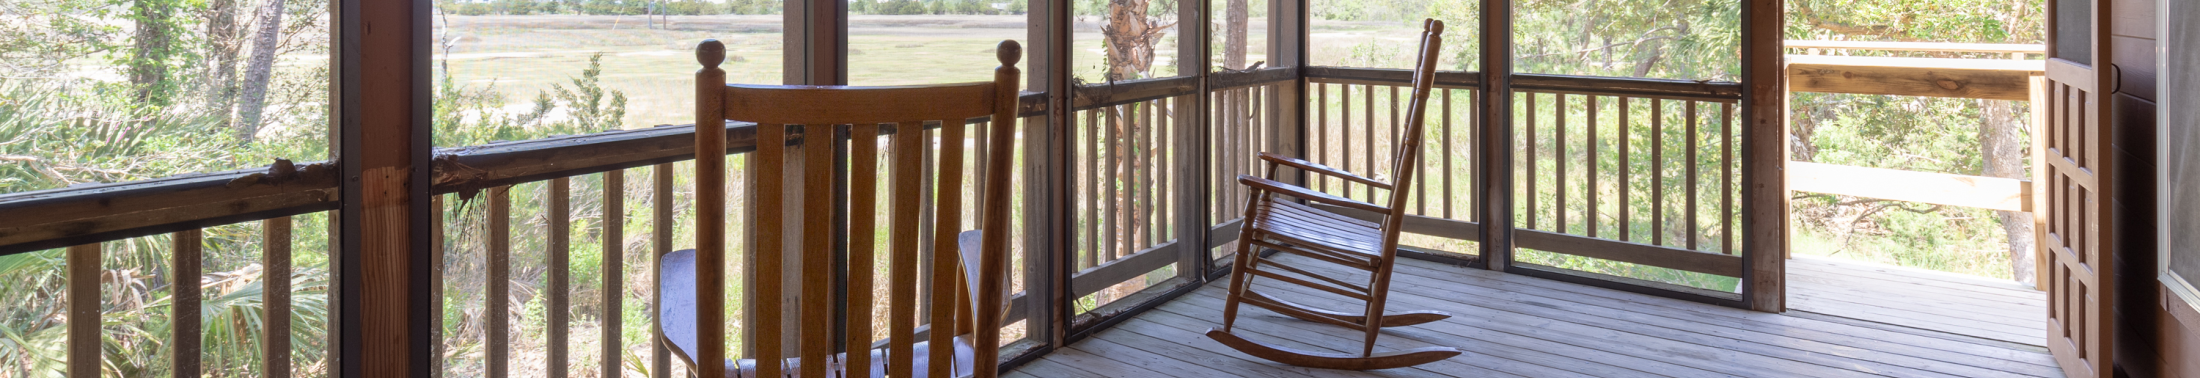 Rocking chairs sit on the screened in porch of the Cottages at James Island County Park